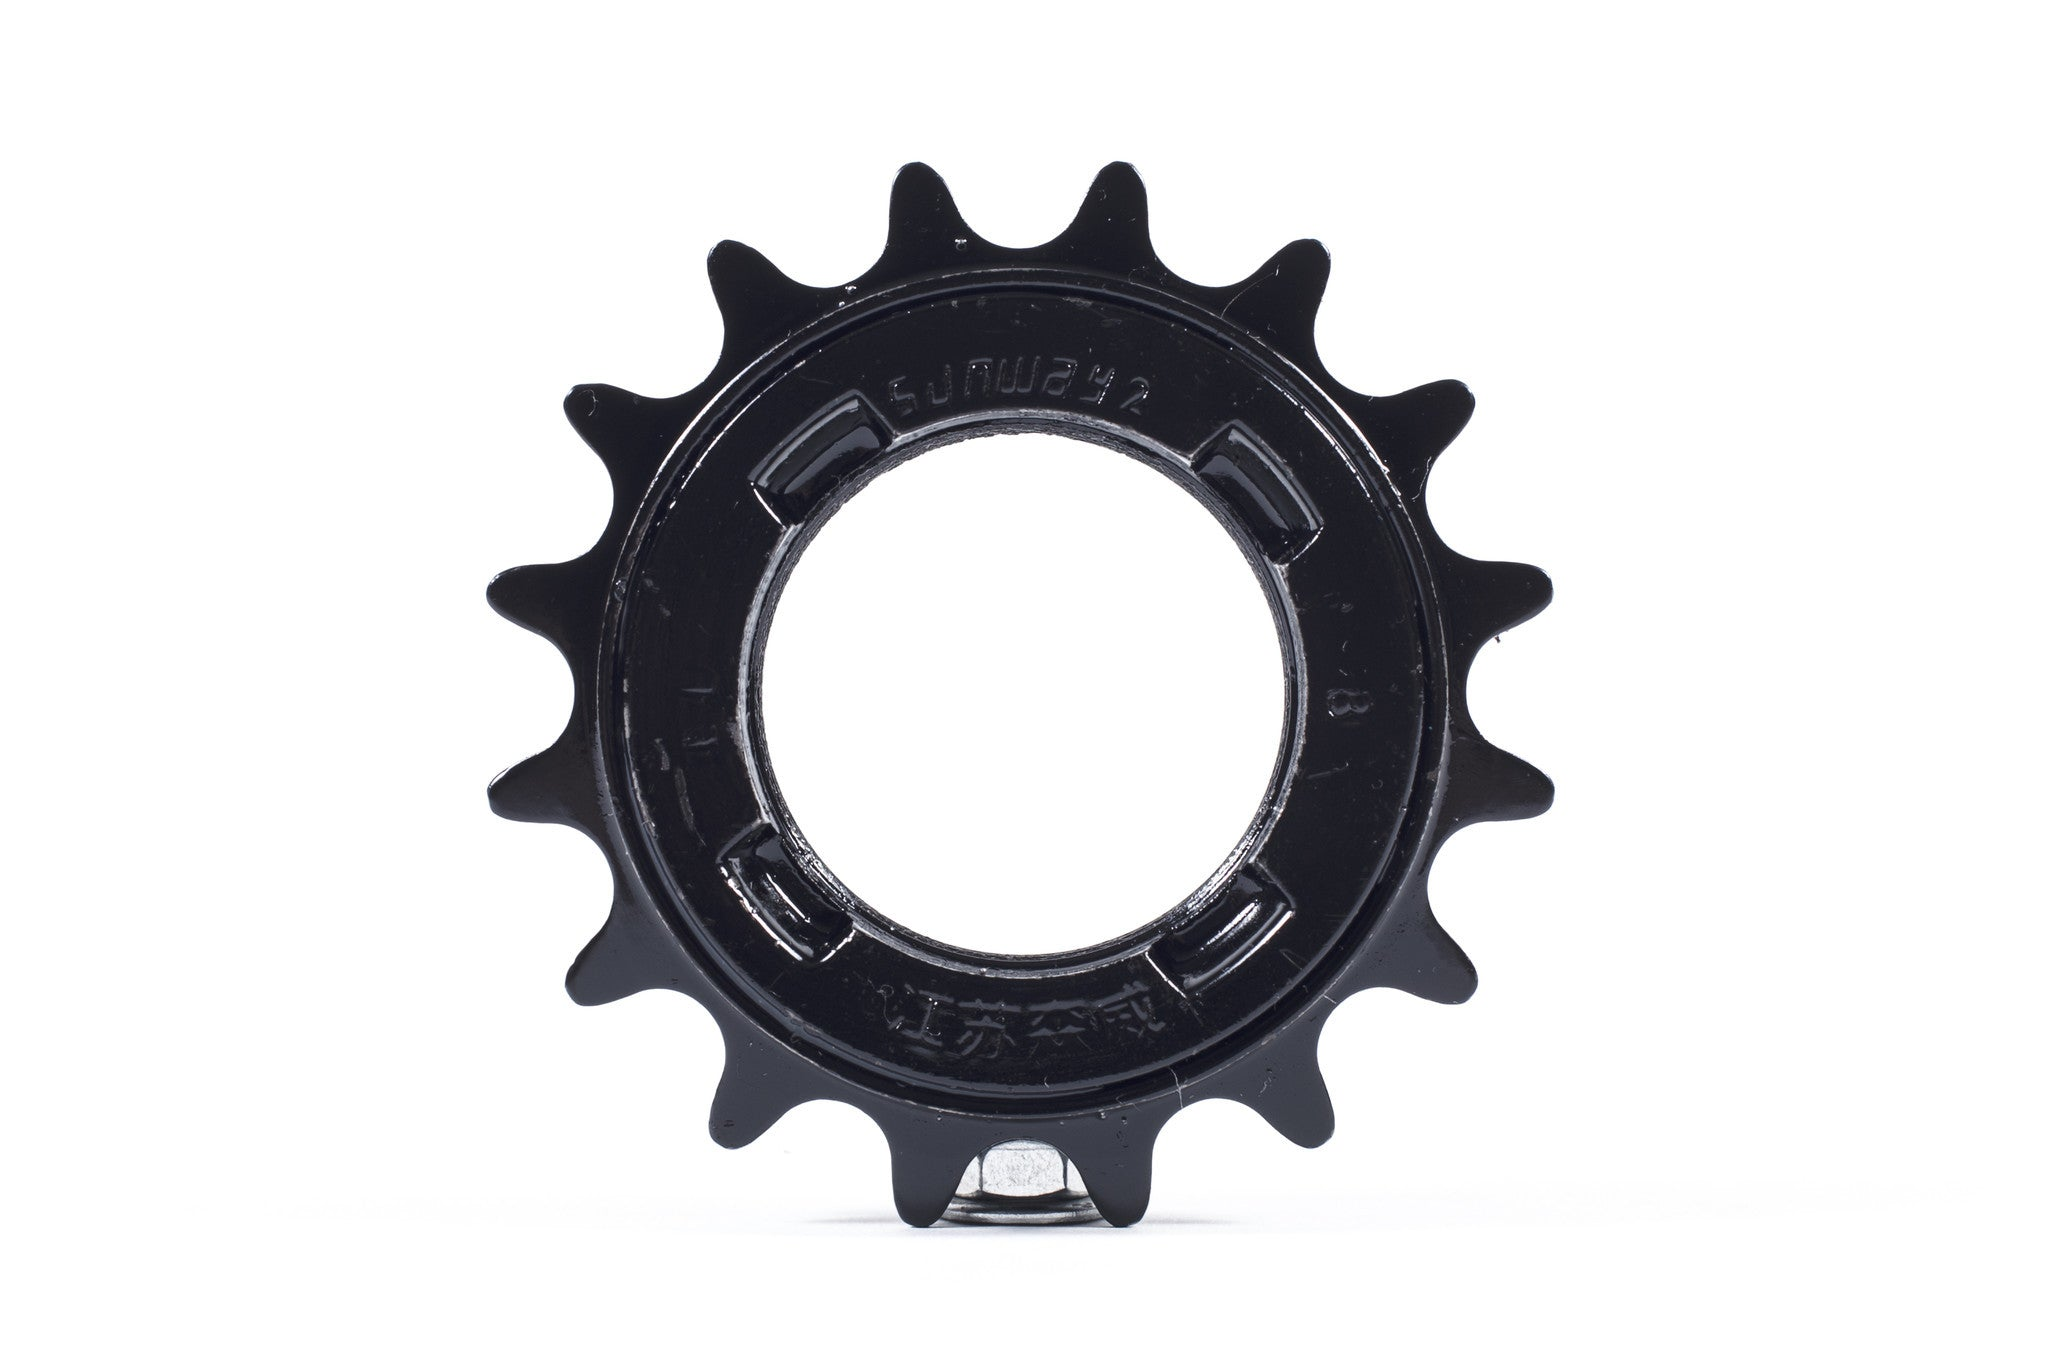 16t free wheel cog bike cogs parts state bicycle co uk eu